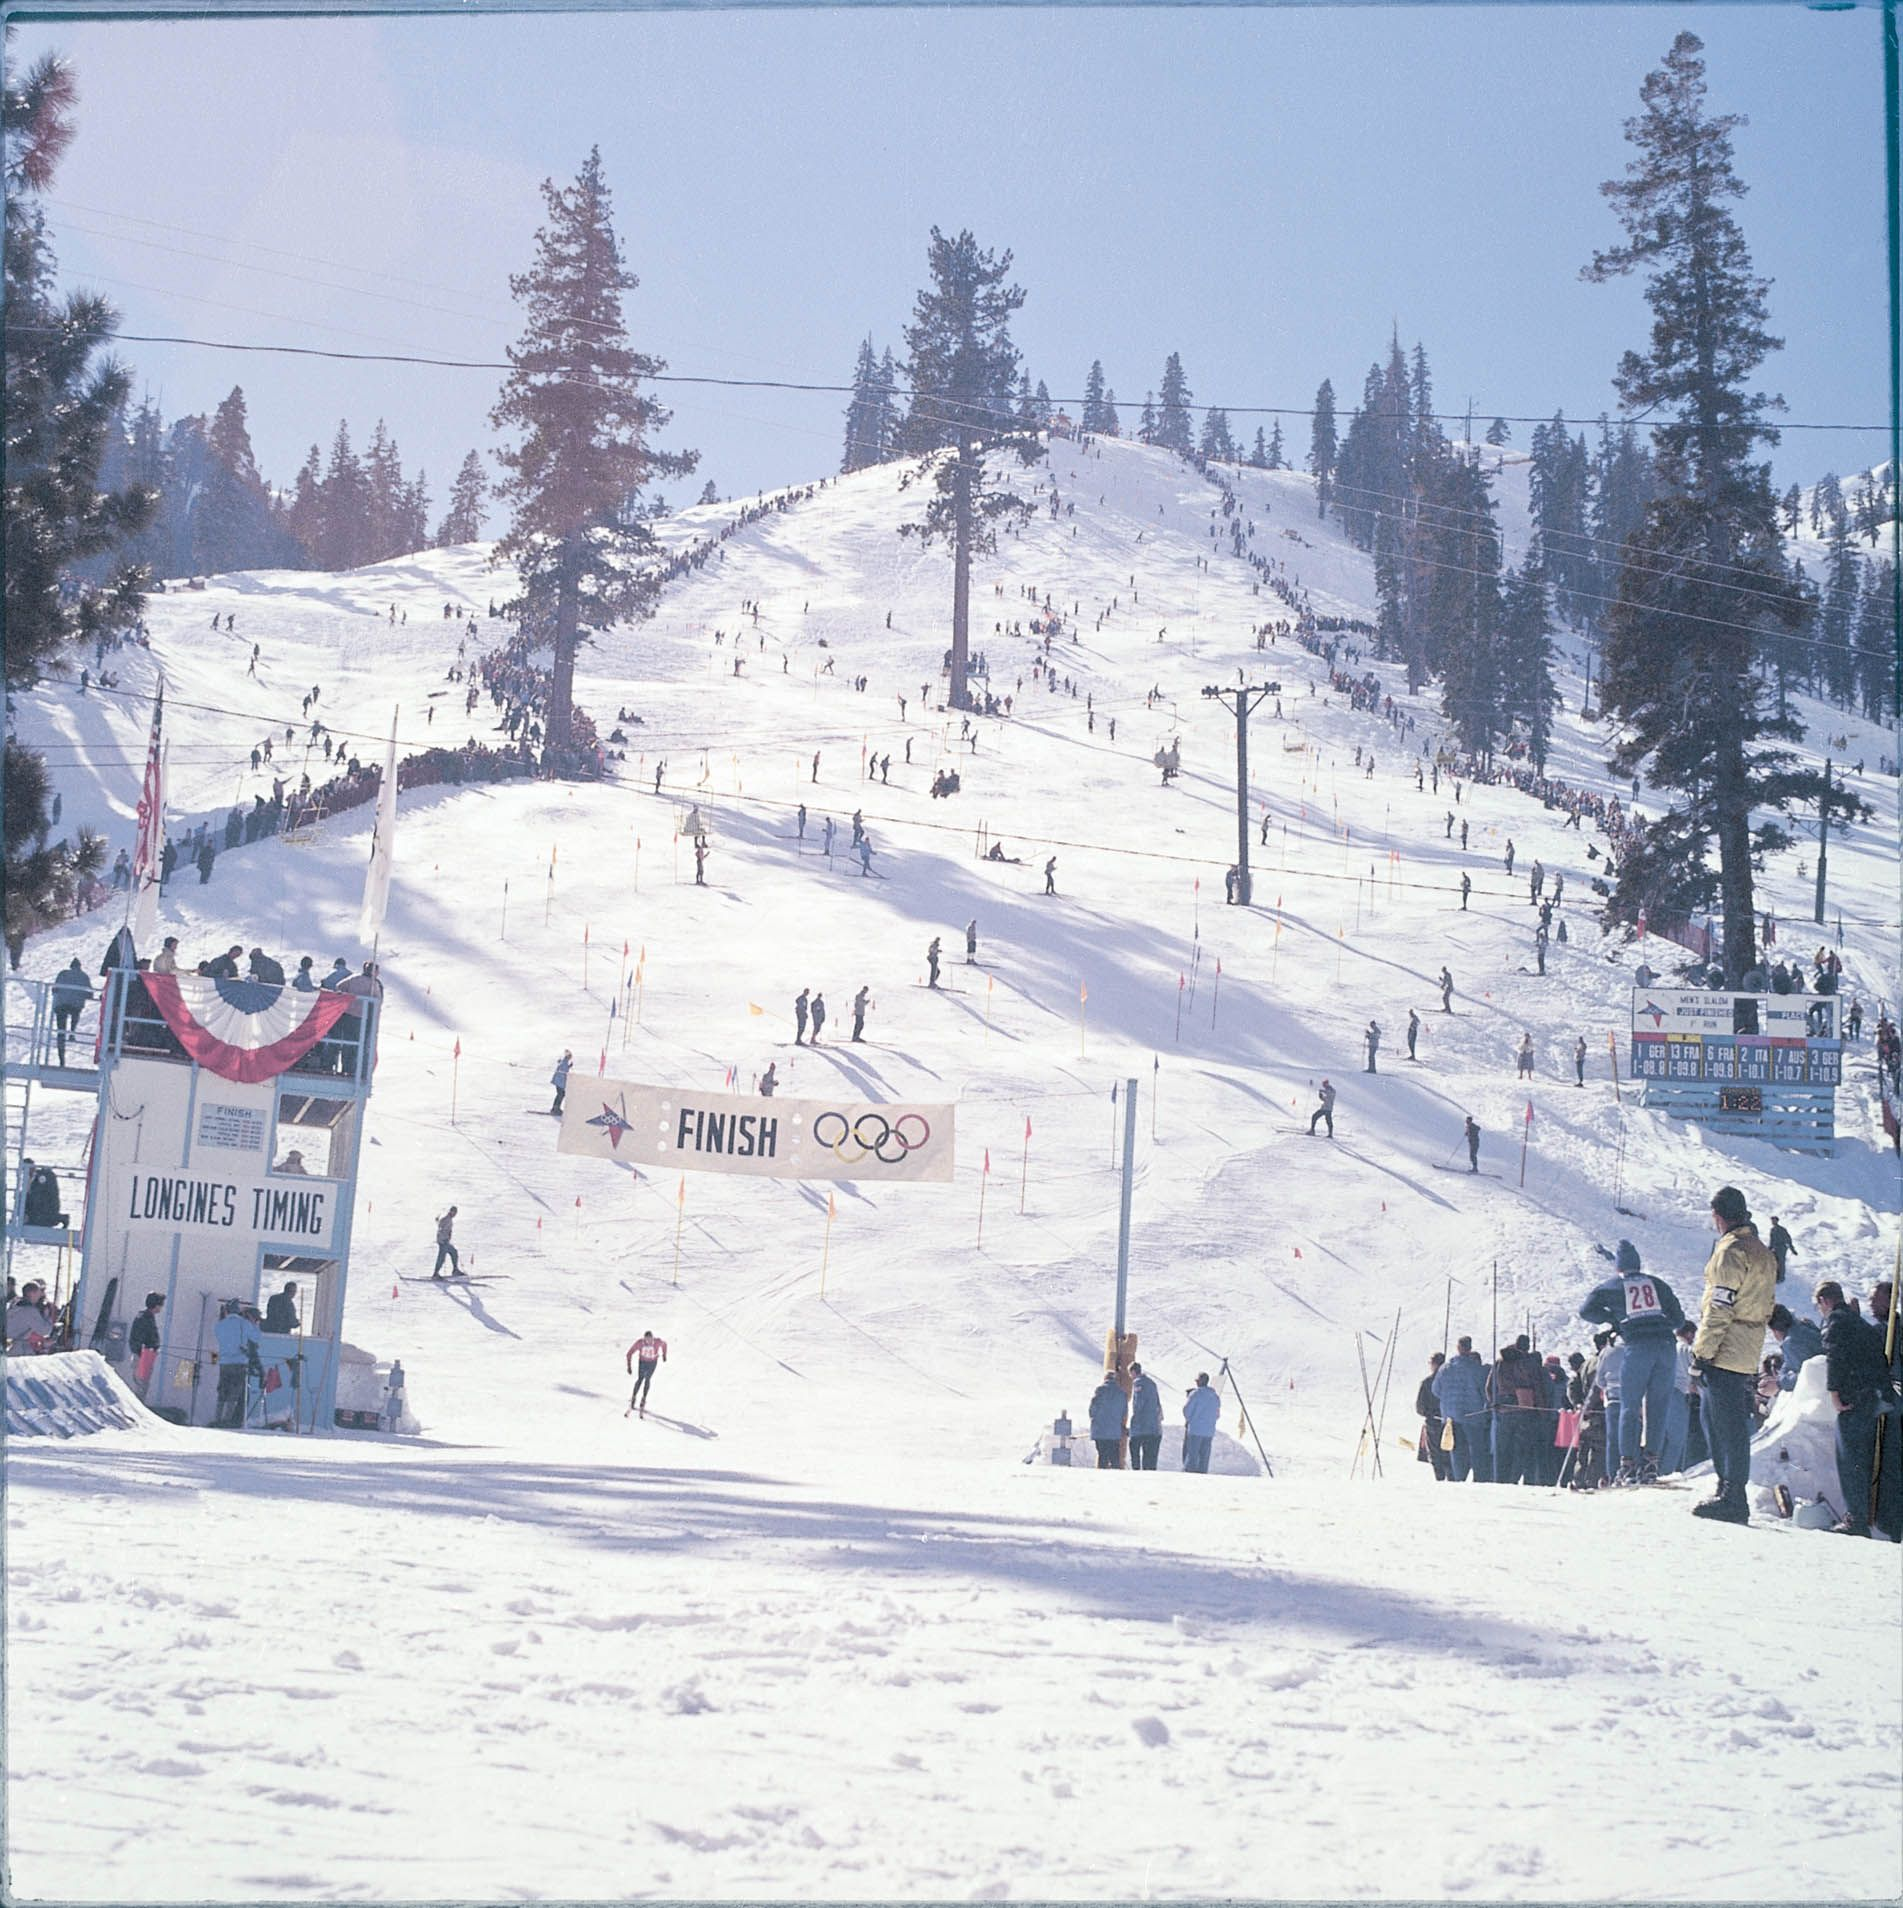 Pin on 1960 Winter Olympics at Squaw Valley